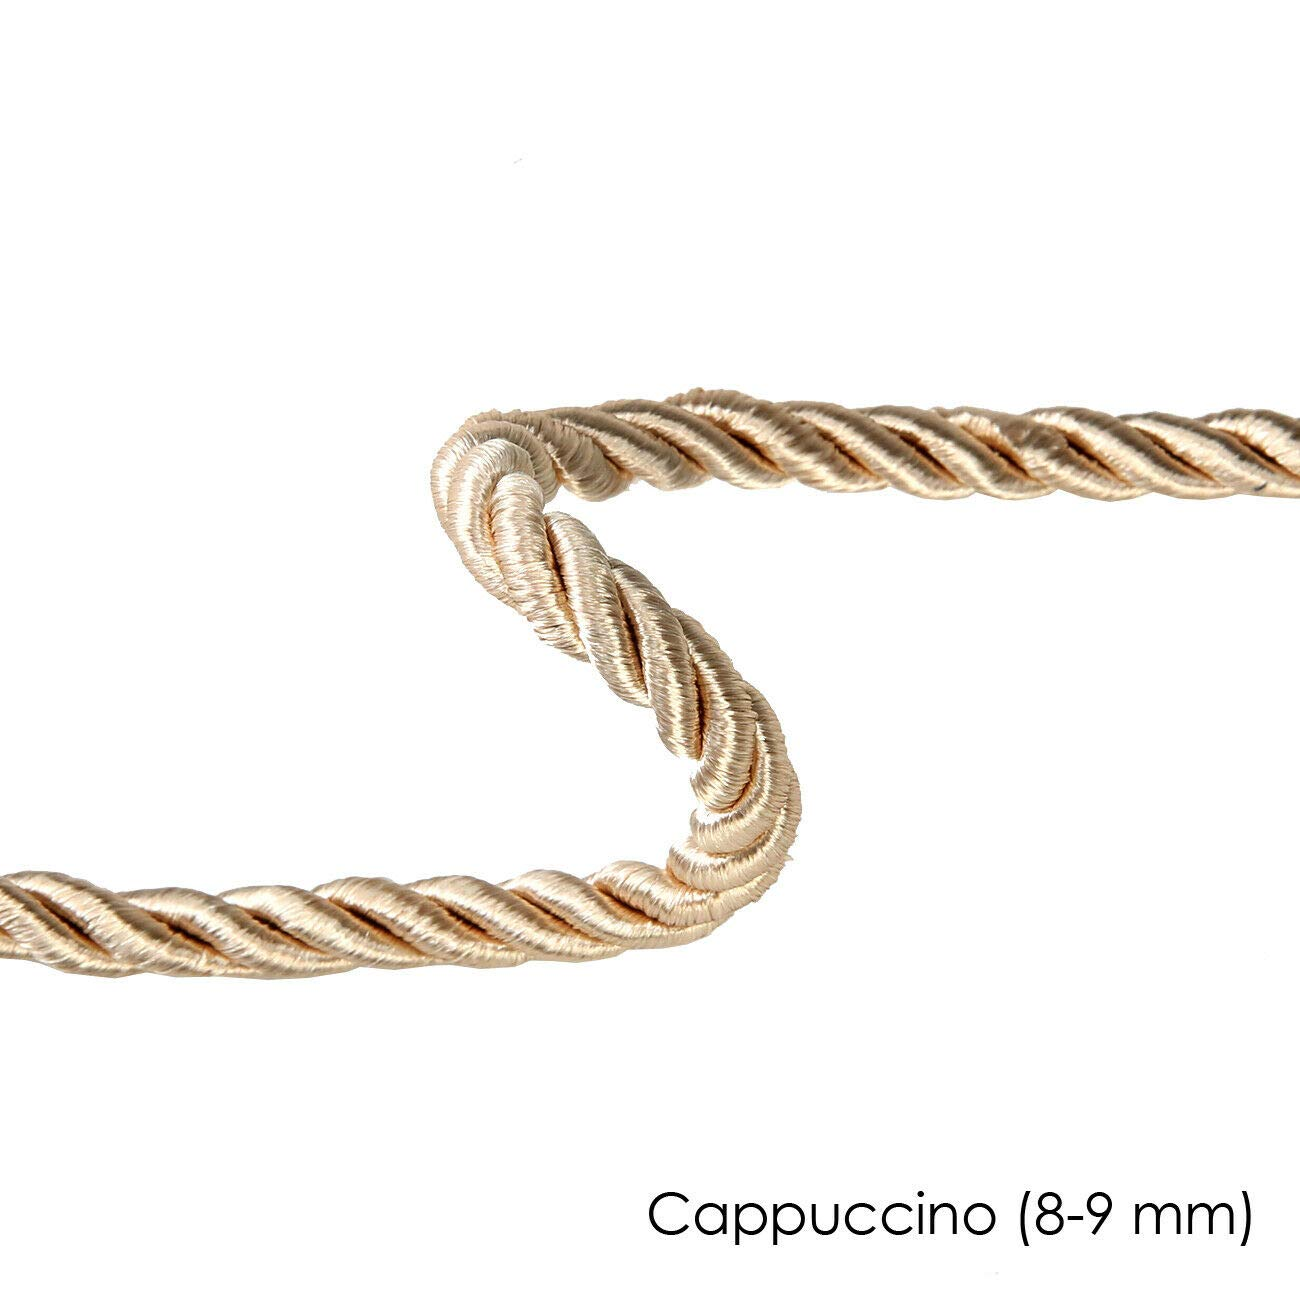 Prominent 3 Ply Twist Look 3 Metres for Piping or Edging,Upholstery,Curtain,Costume /& Home D/écor High Sheen Neotrims 10mm Barley Twist Rope Cord Trimming,Braided Red 8mm